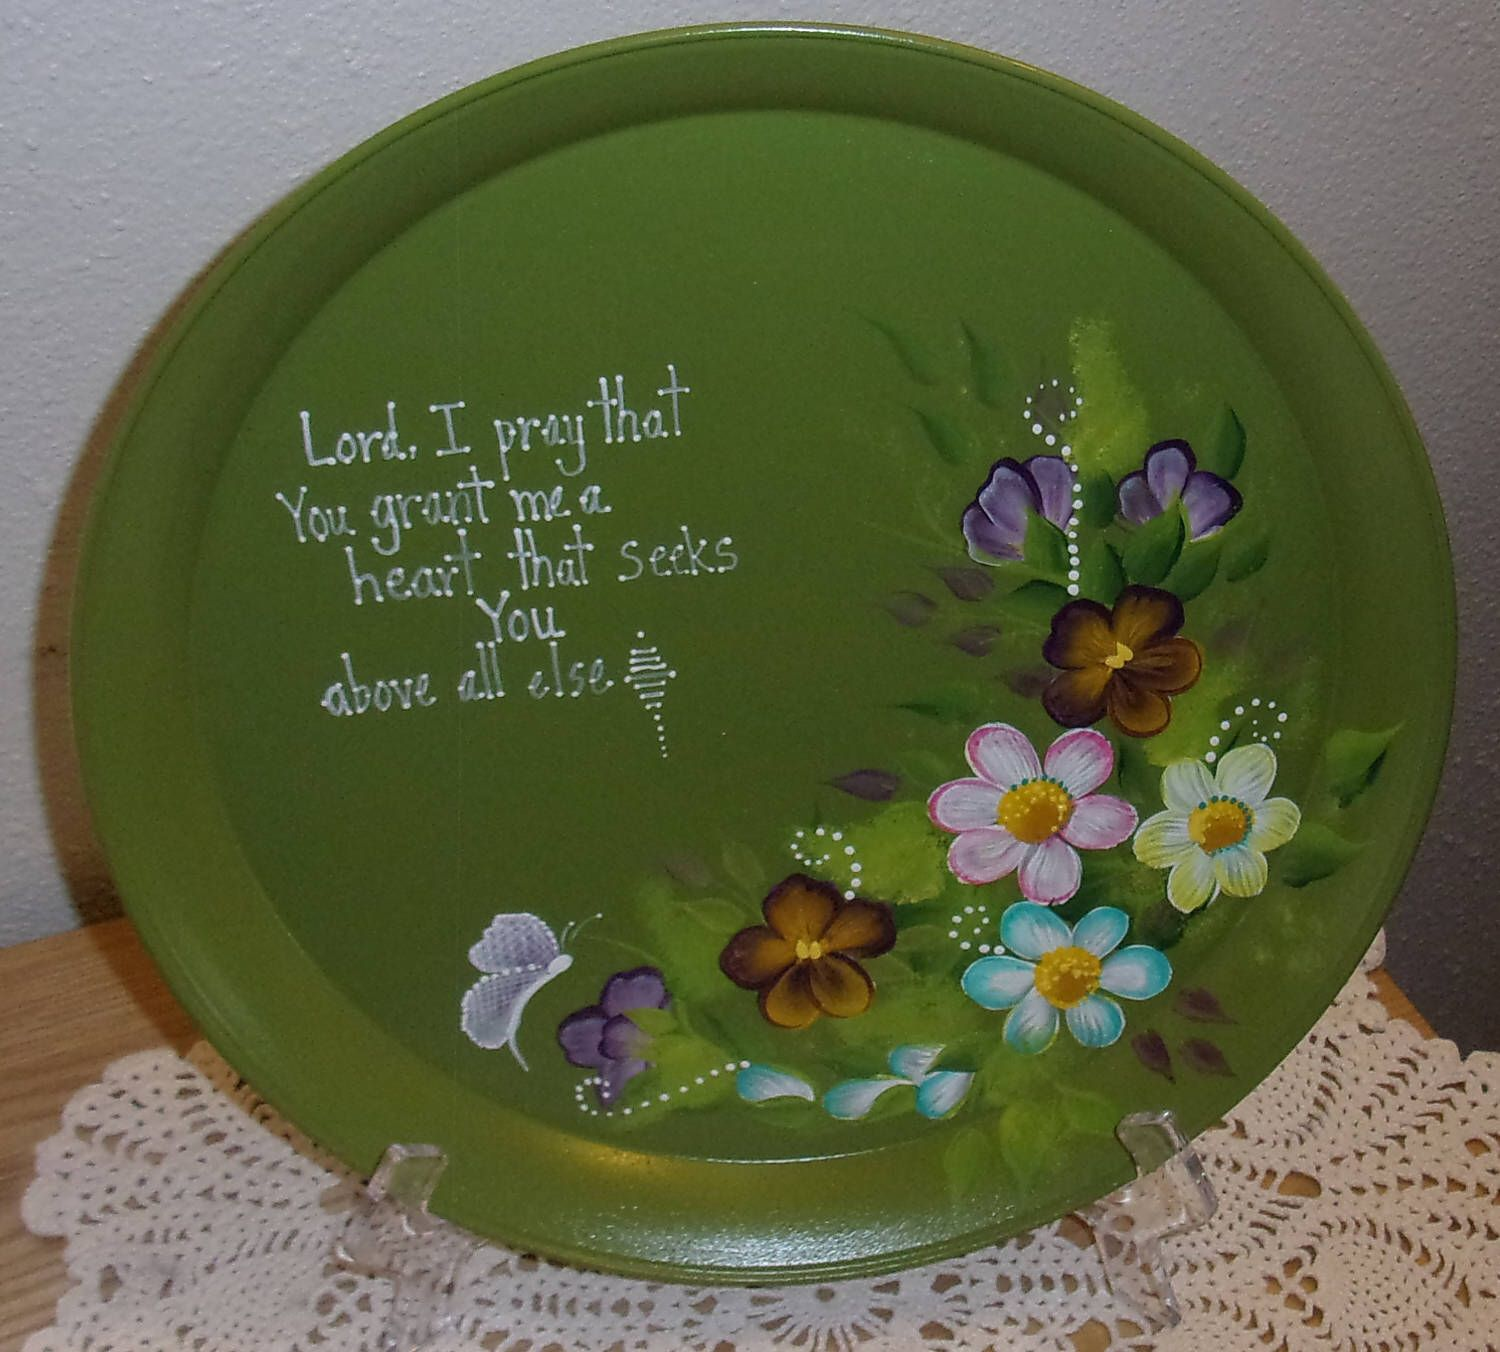 Hand Painted-Decorative Plate-Platter-Charger-Tray-Butterfly-Inspirational- & Hand Painted-Decorative Plate-Platter-Charger-Tray-Butterfly ...